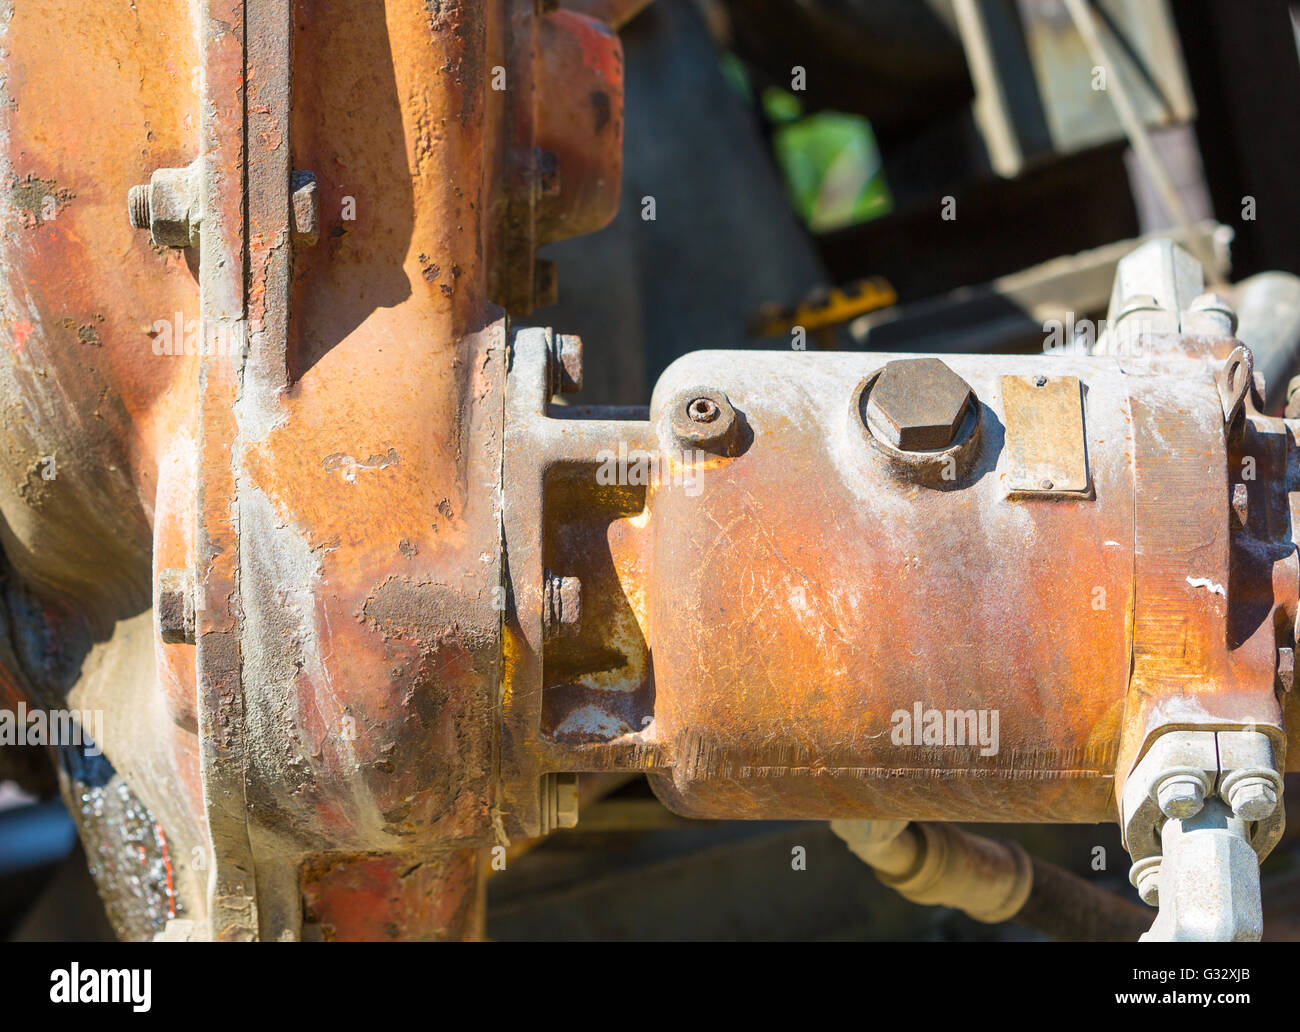 detail image of a piece of a construction equipment machinery Stock Photo